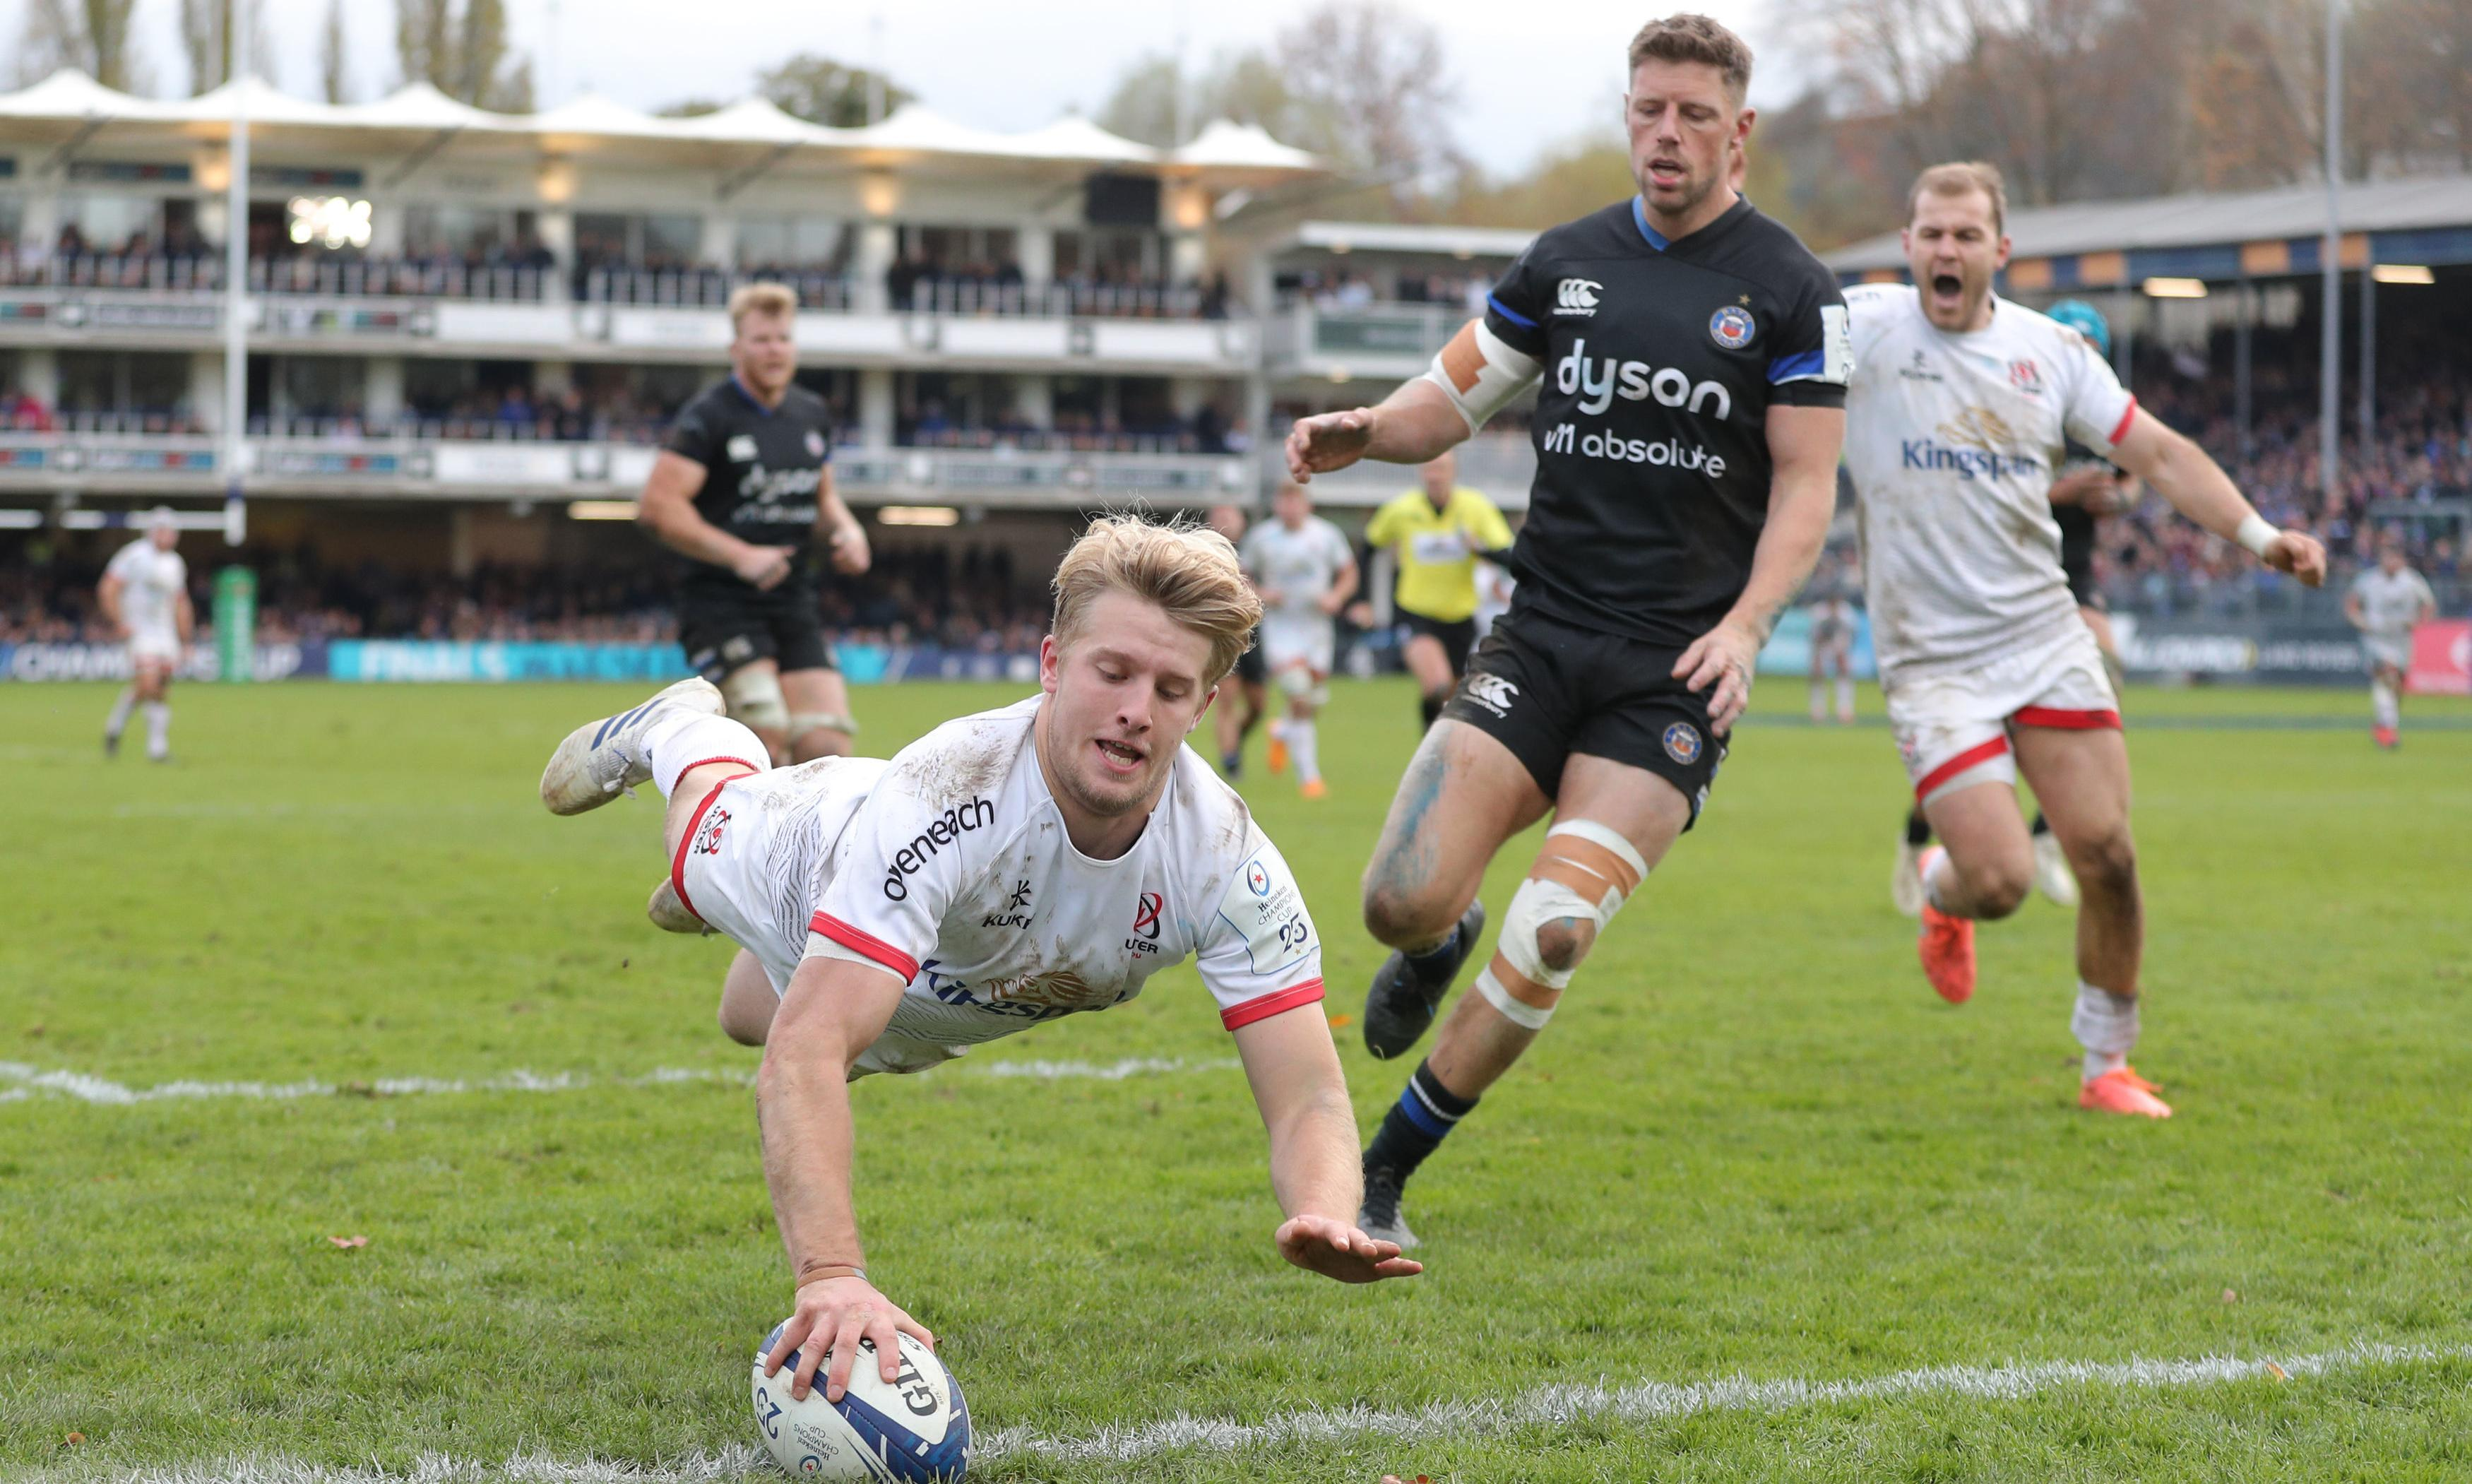 Jacob Stockdale helps Ulster hang on for hard-fought victory at Bath